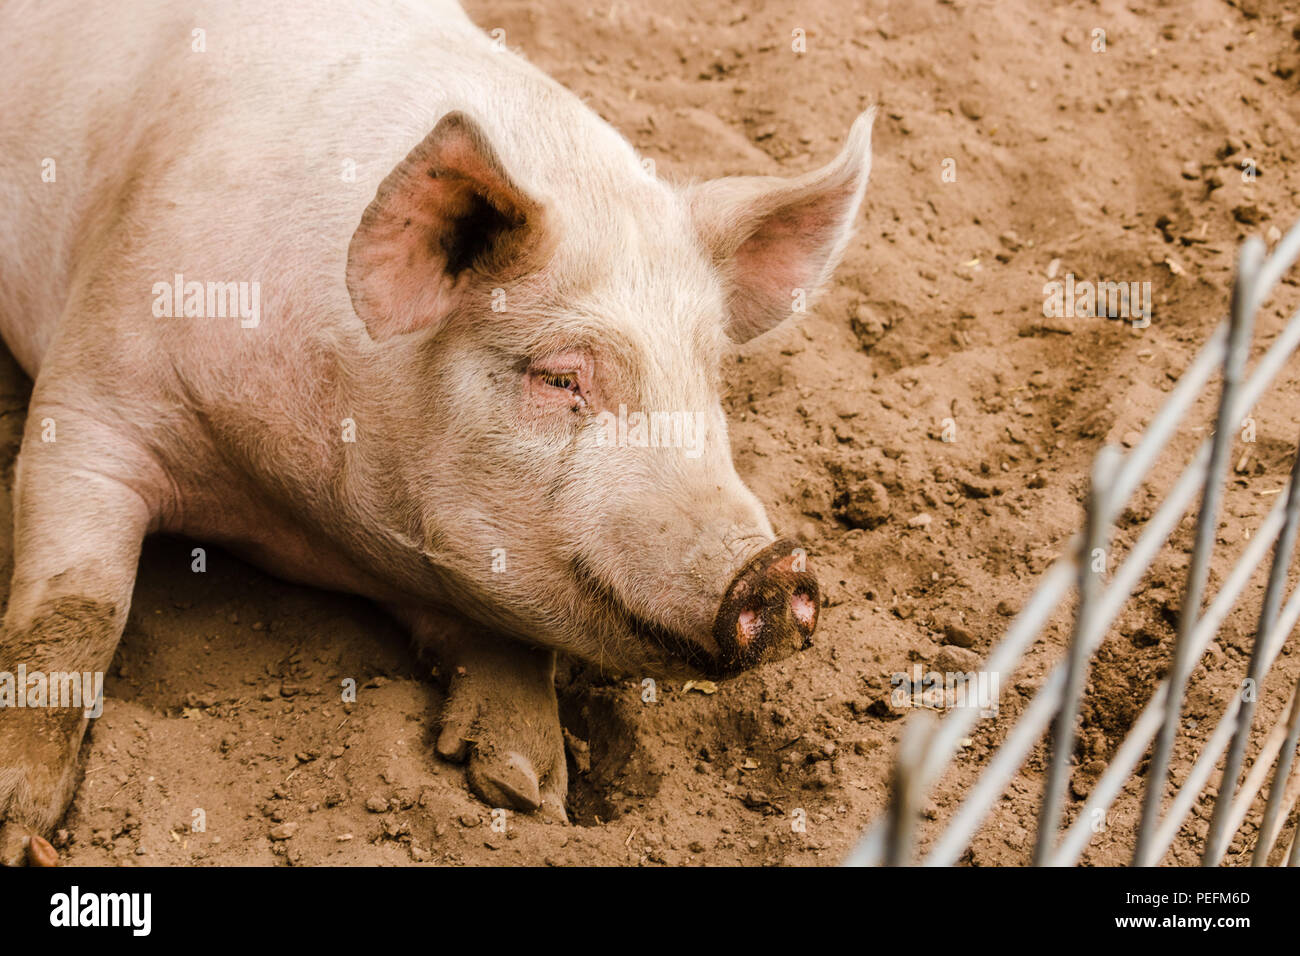 Close up head shot of sweet smiling single dirty young domestic gentle pink pig with mudd face,, big ears, dirty hoooves longing to be outside her fen - Stock Image